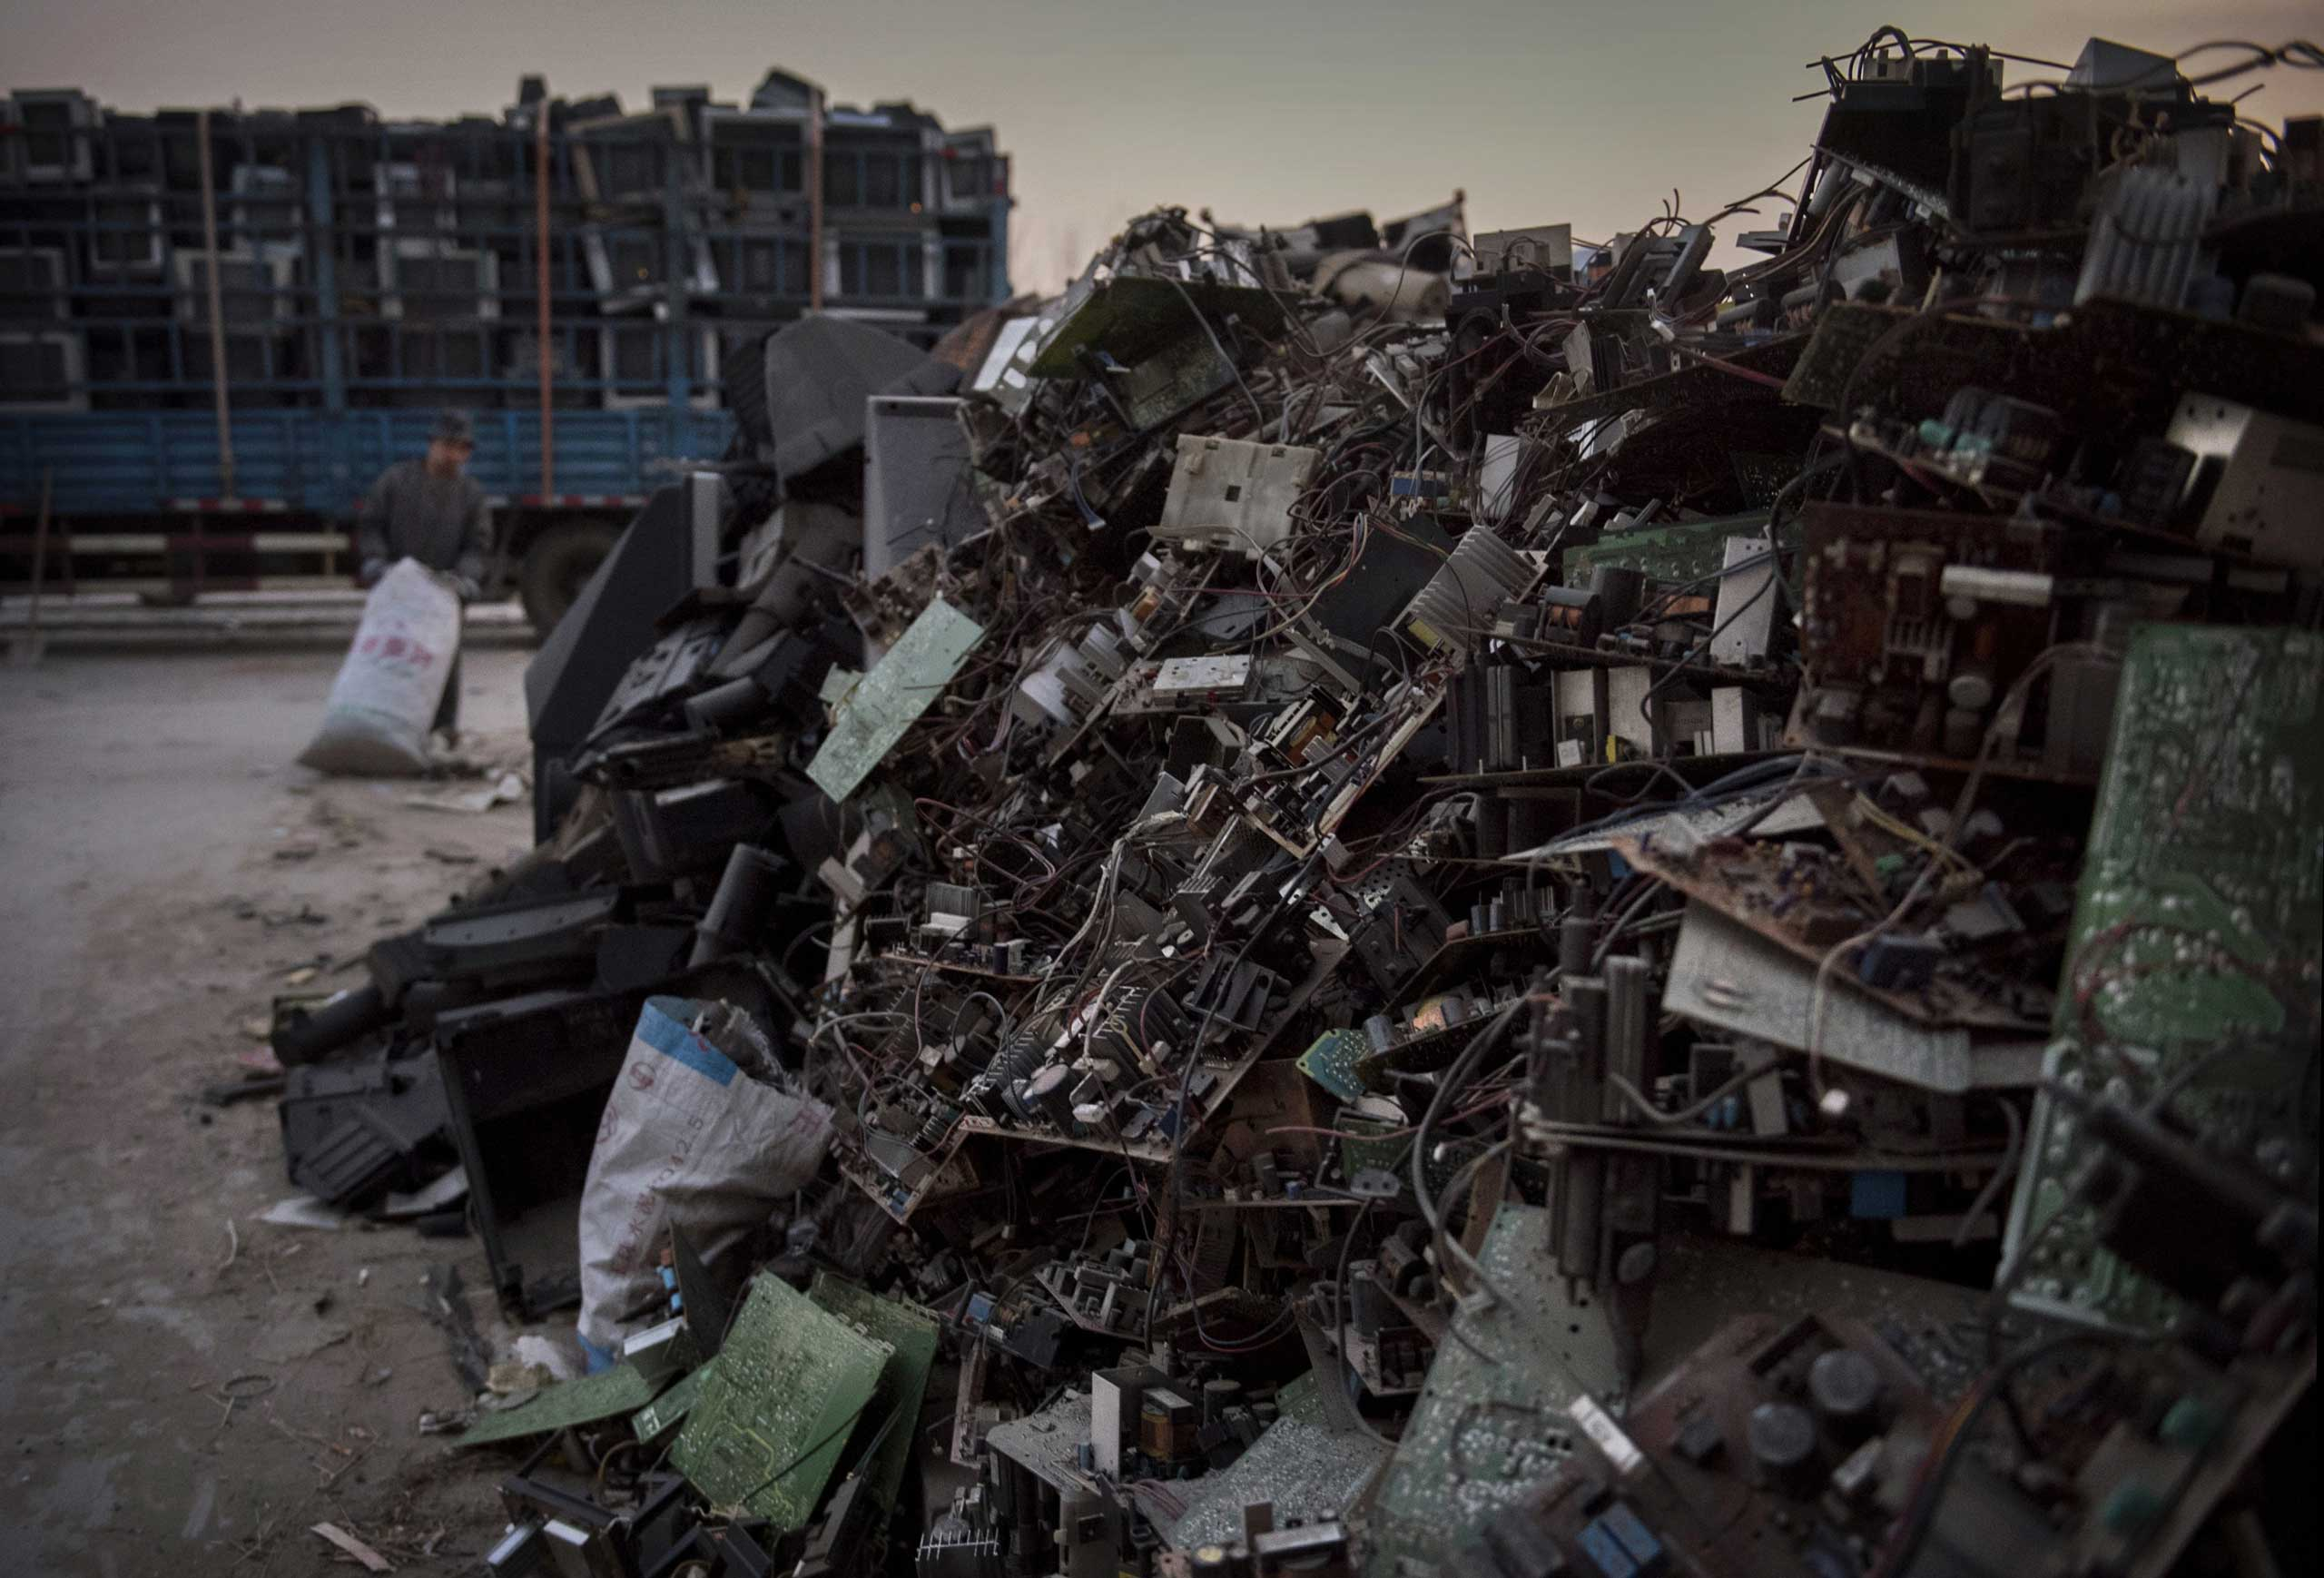 Discarded computer and electronics parts wait to be recycled in the Dong Xiao Kou village on Dec. 11, 2014 in Beijing.